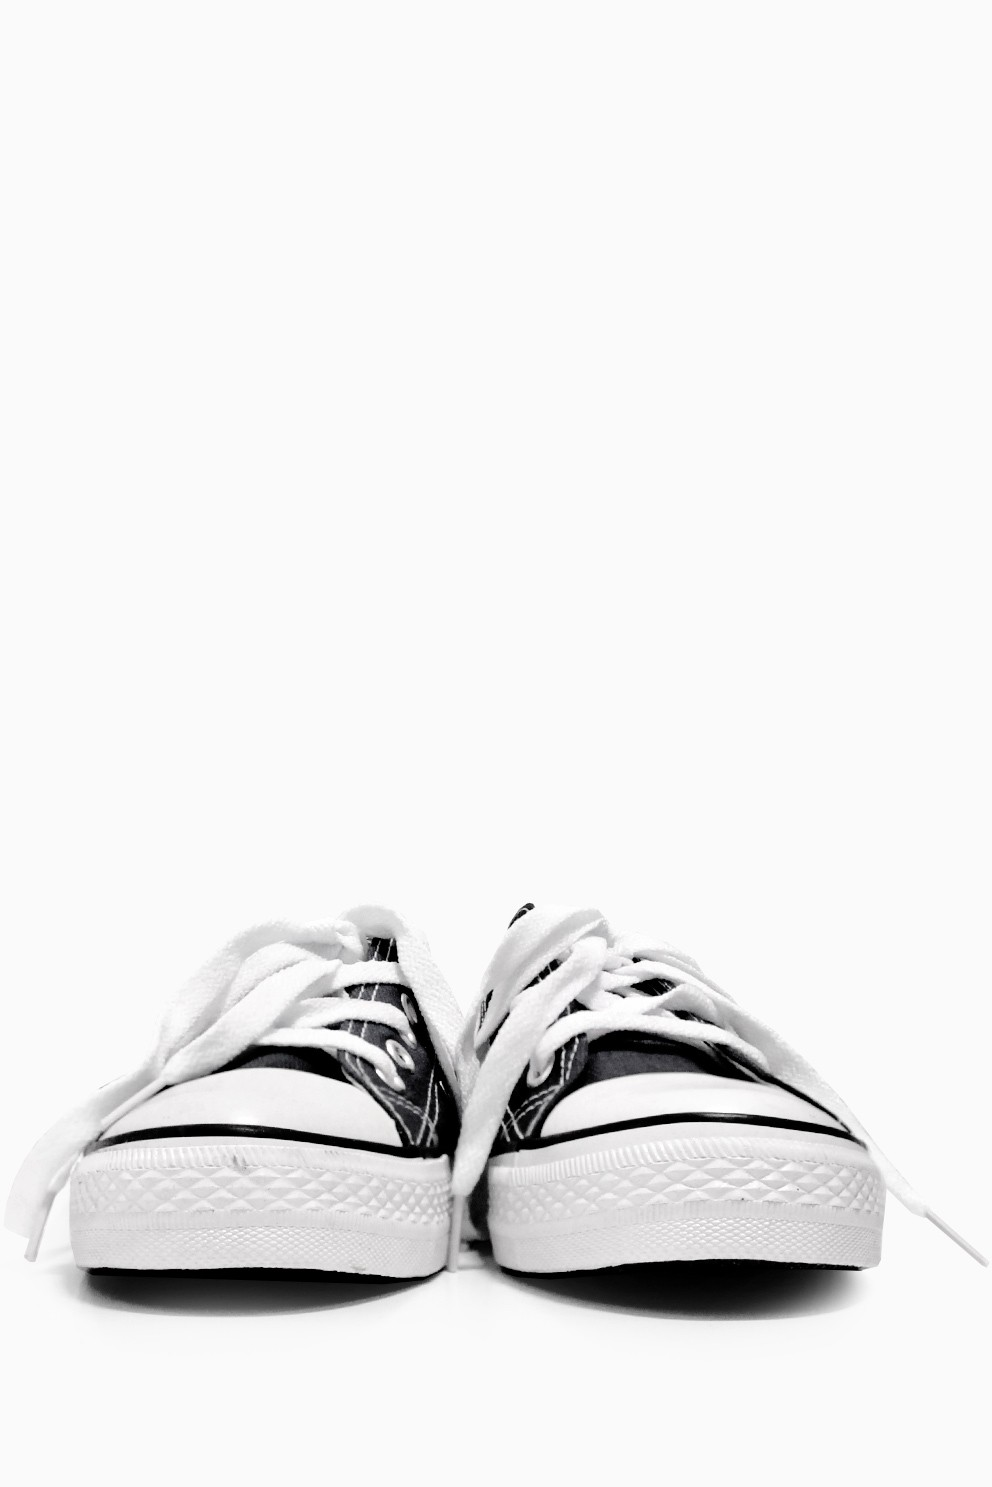 lena lace up tennis shoes in black iclothing